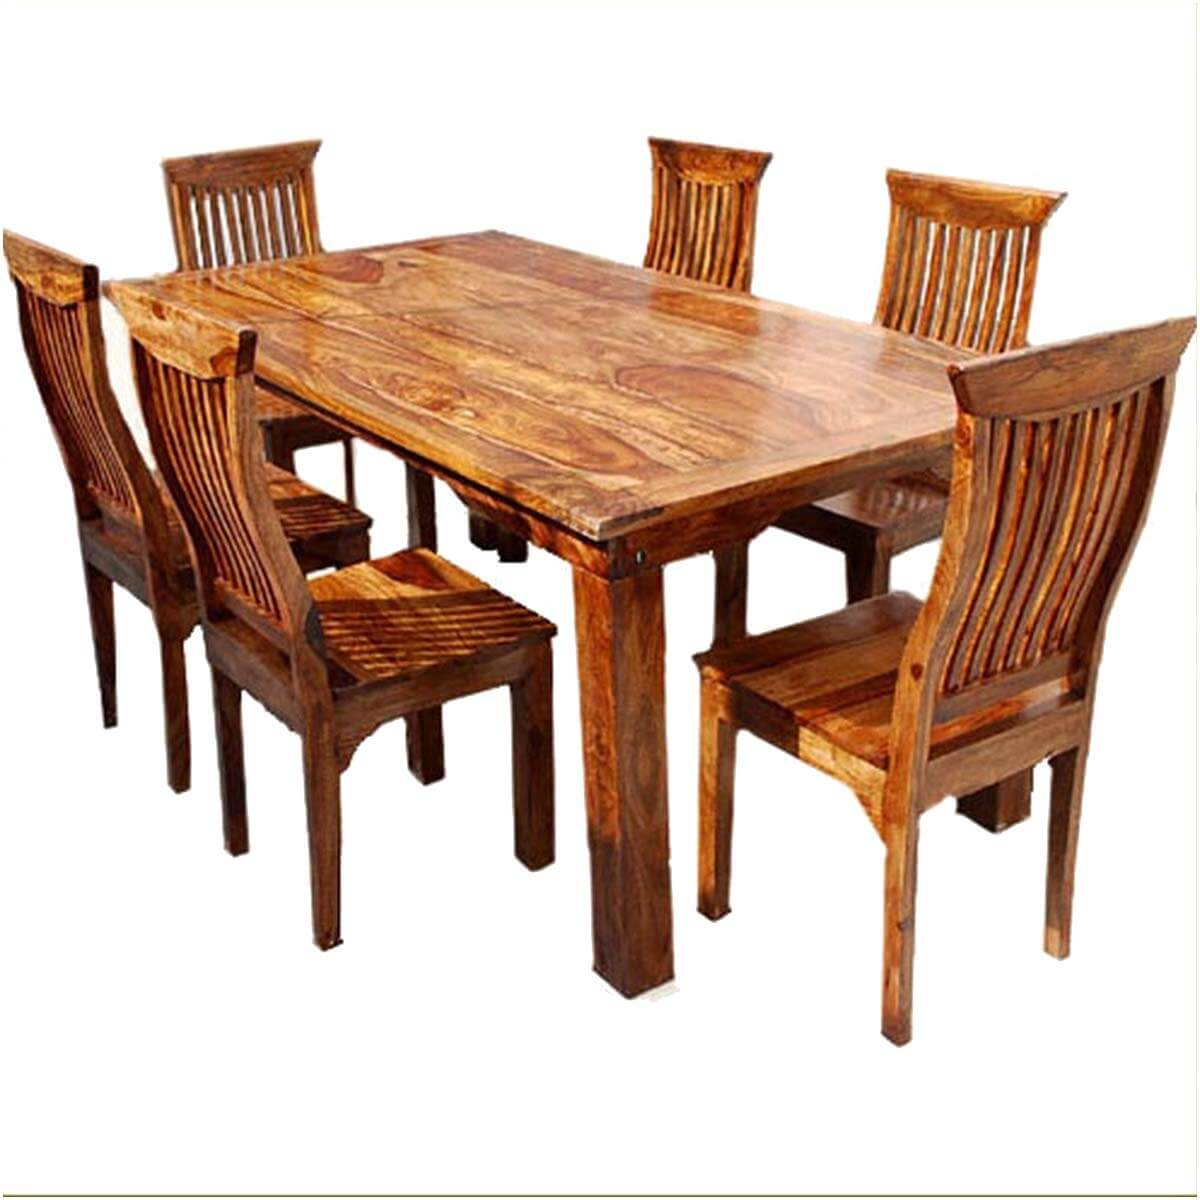 Dallas ranch solid wood rustic dining table chairs hutch set for Dining room furniture images